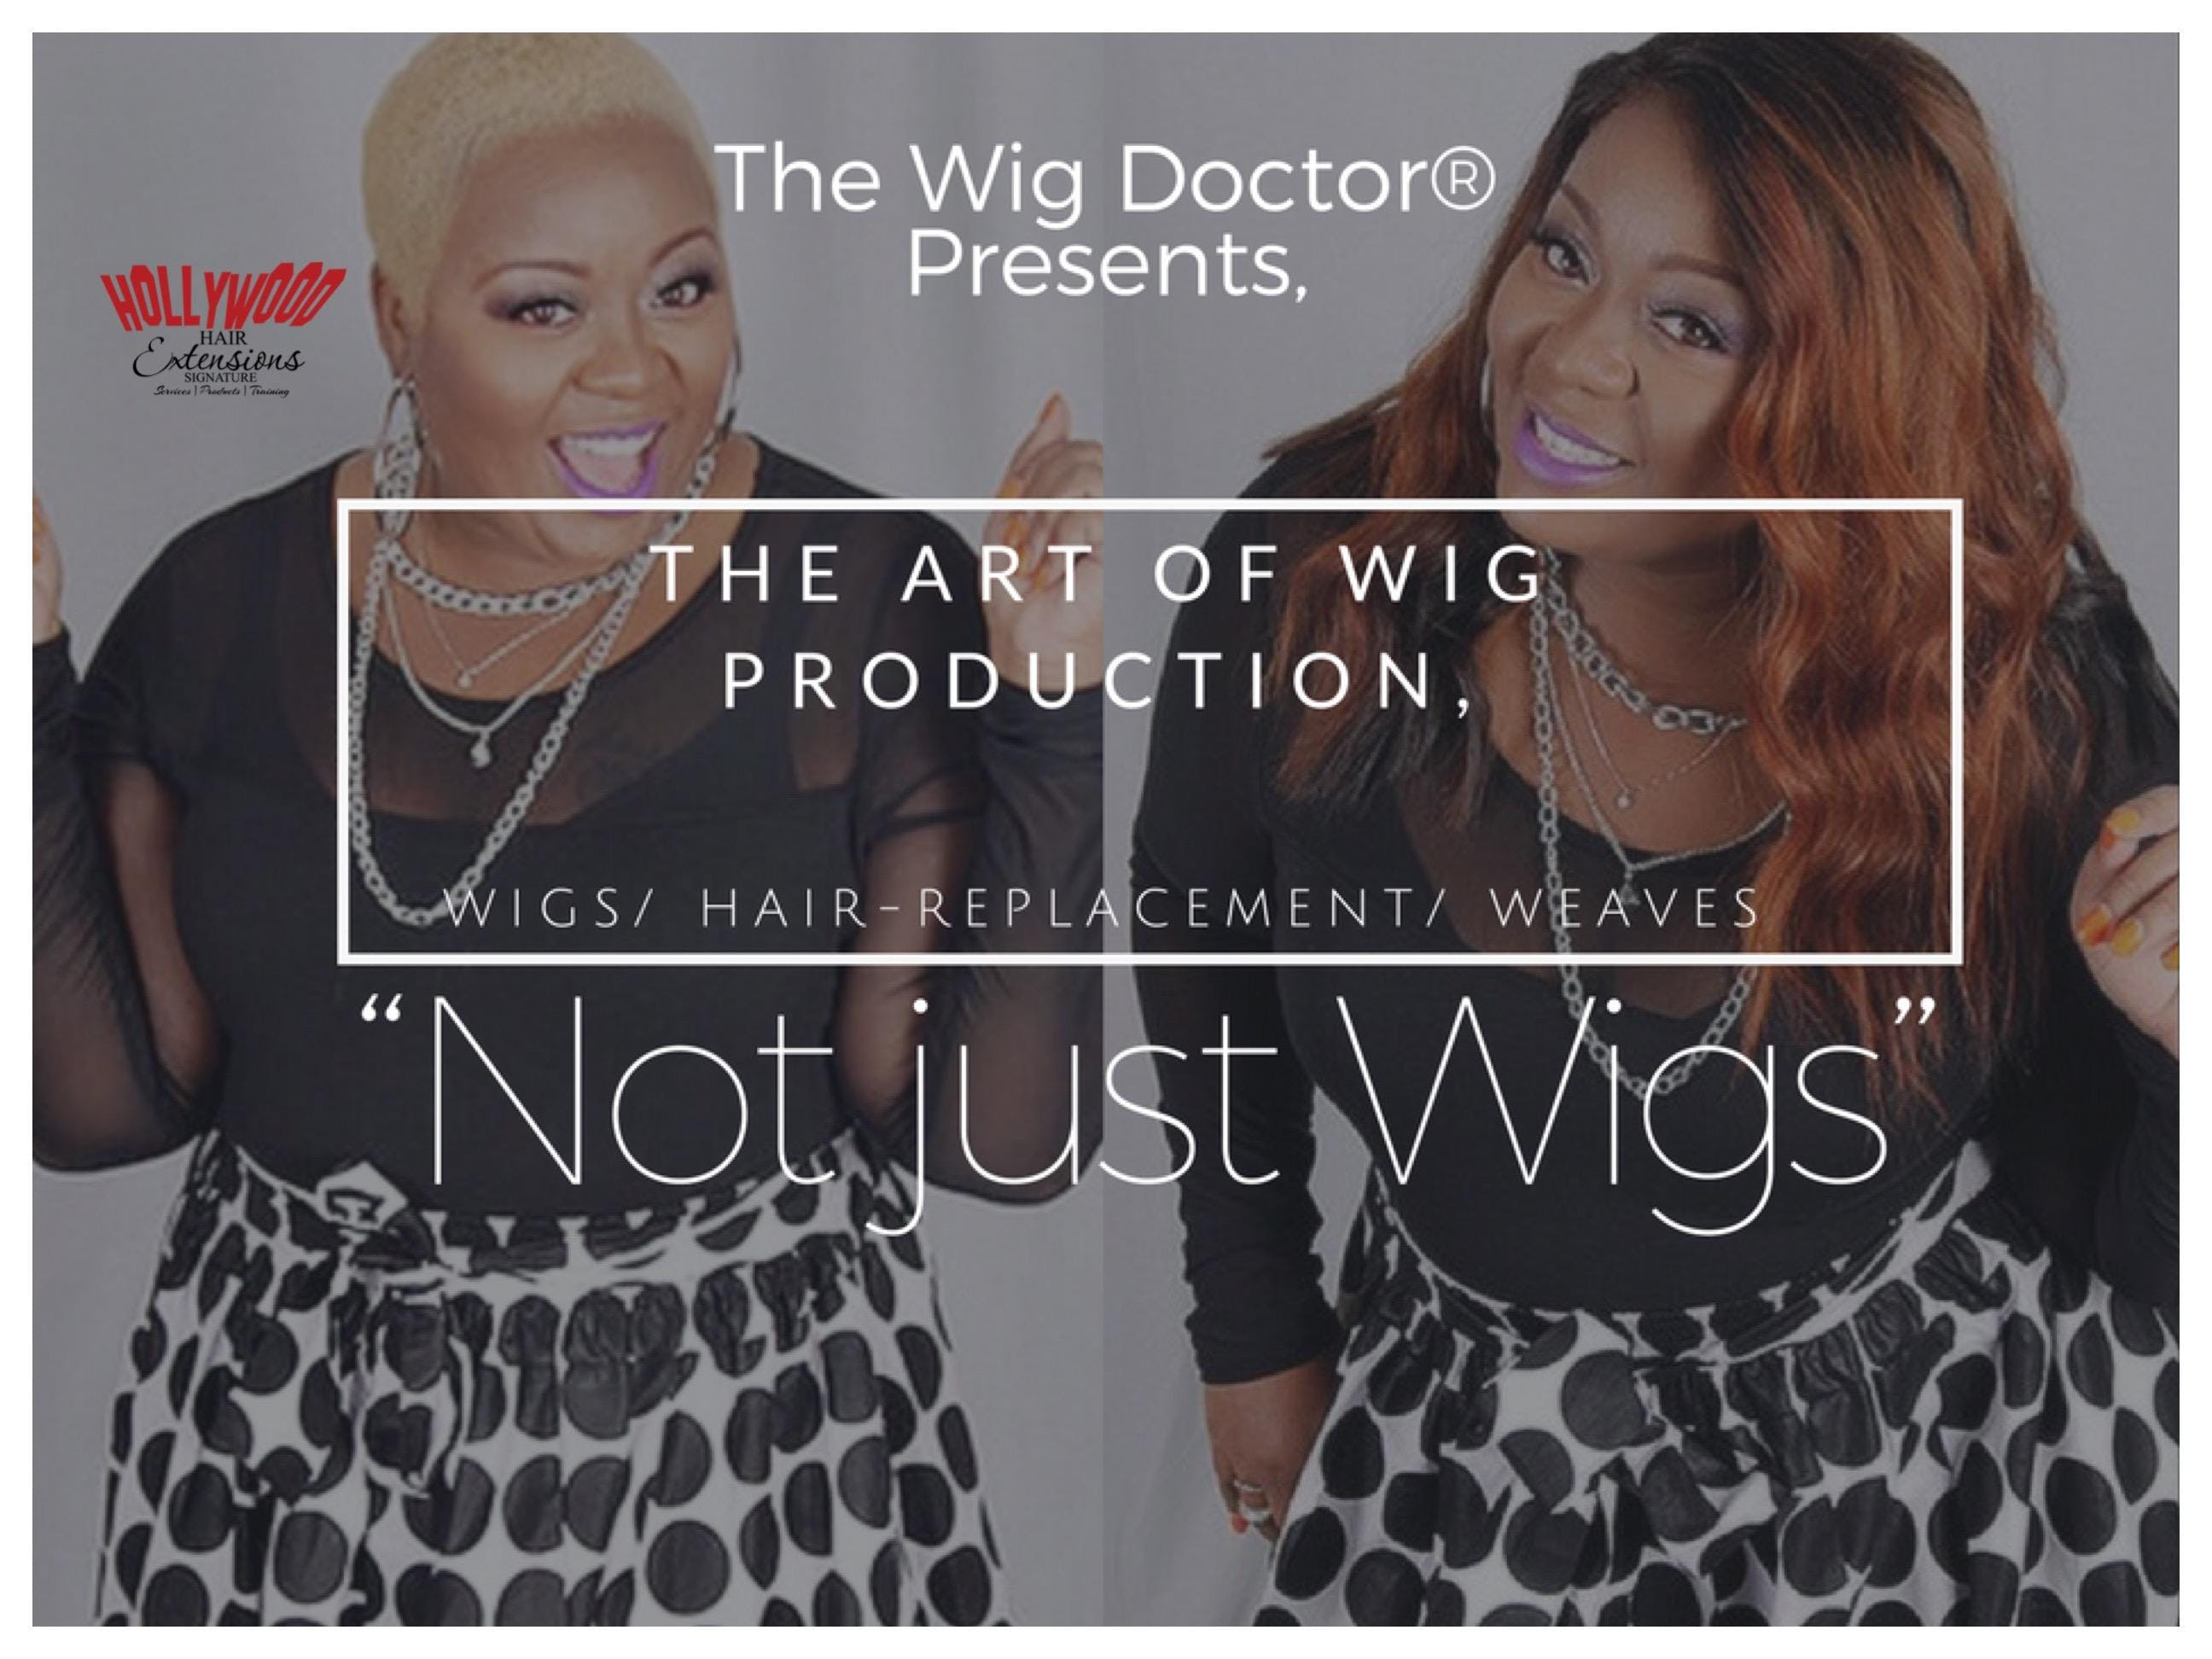 The Art of Wig ProductionNot just Wigs